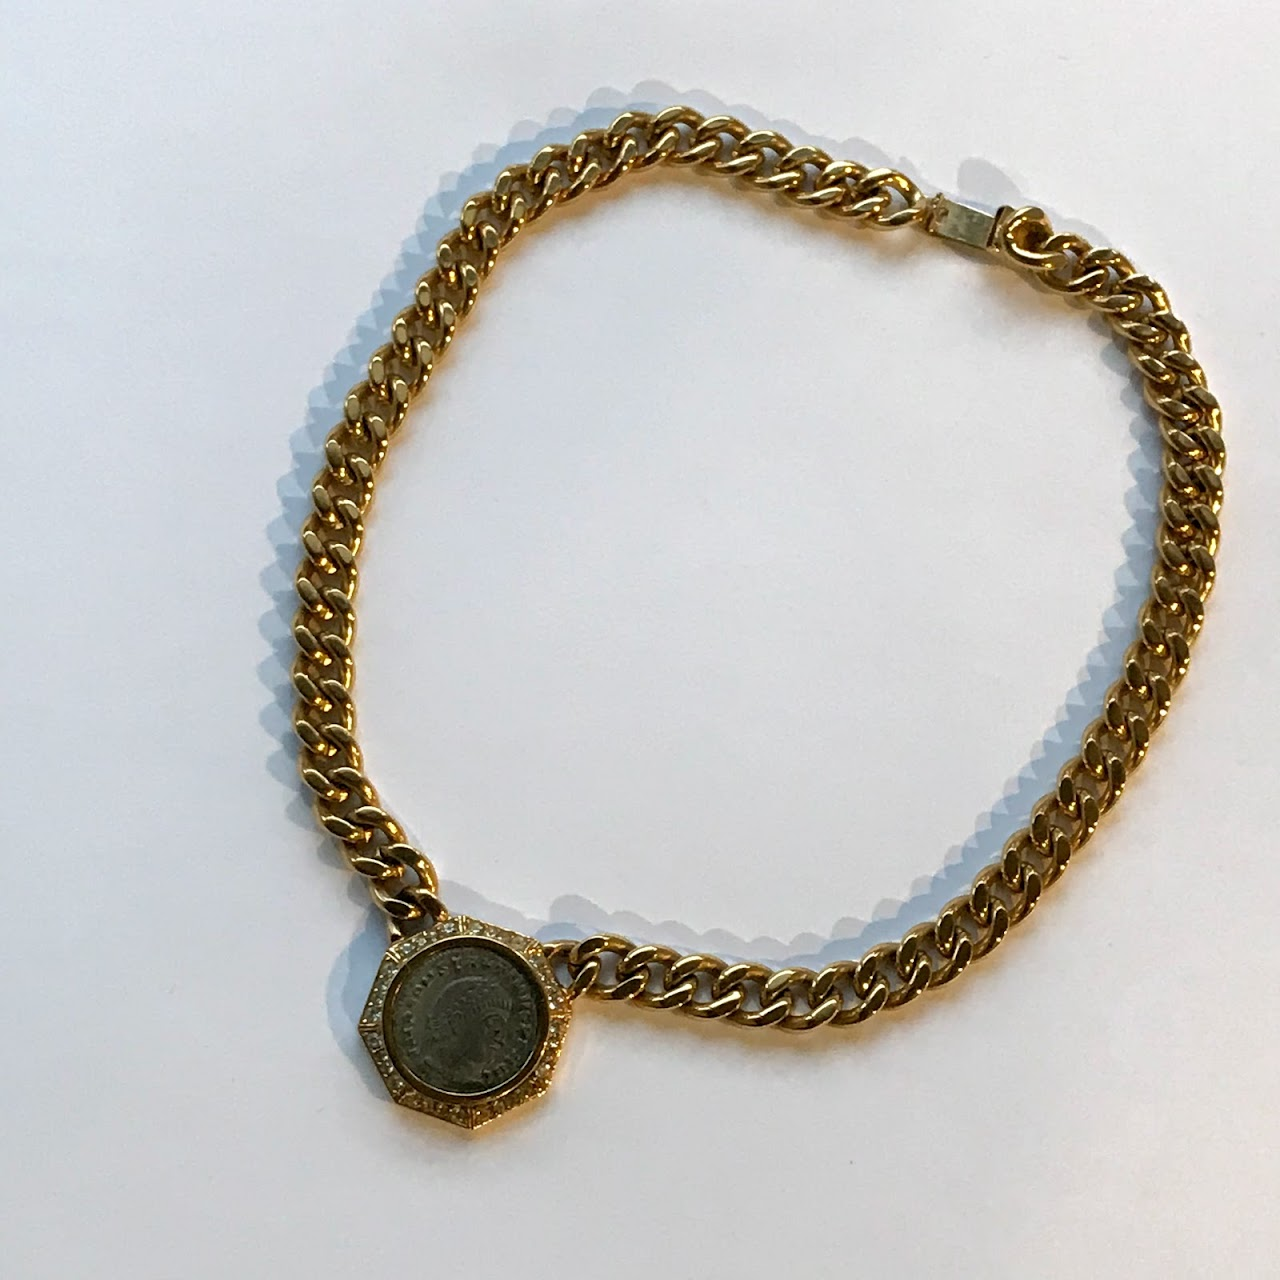 roman a bracelet colt bye with motif coin in guns charm twin intaglio luxe necklace products les gun glamorous gold revoir filles interlocking medallion biddy au fob featuring